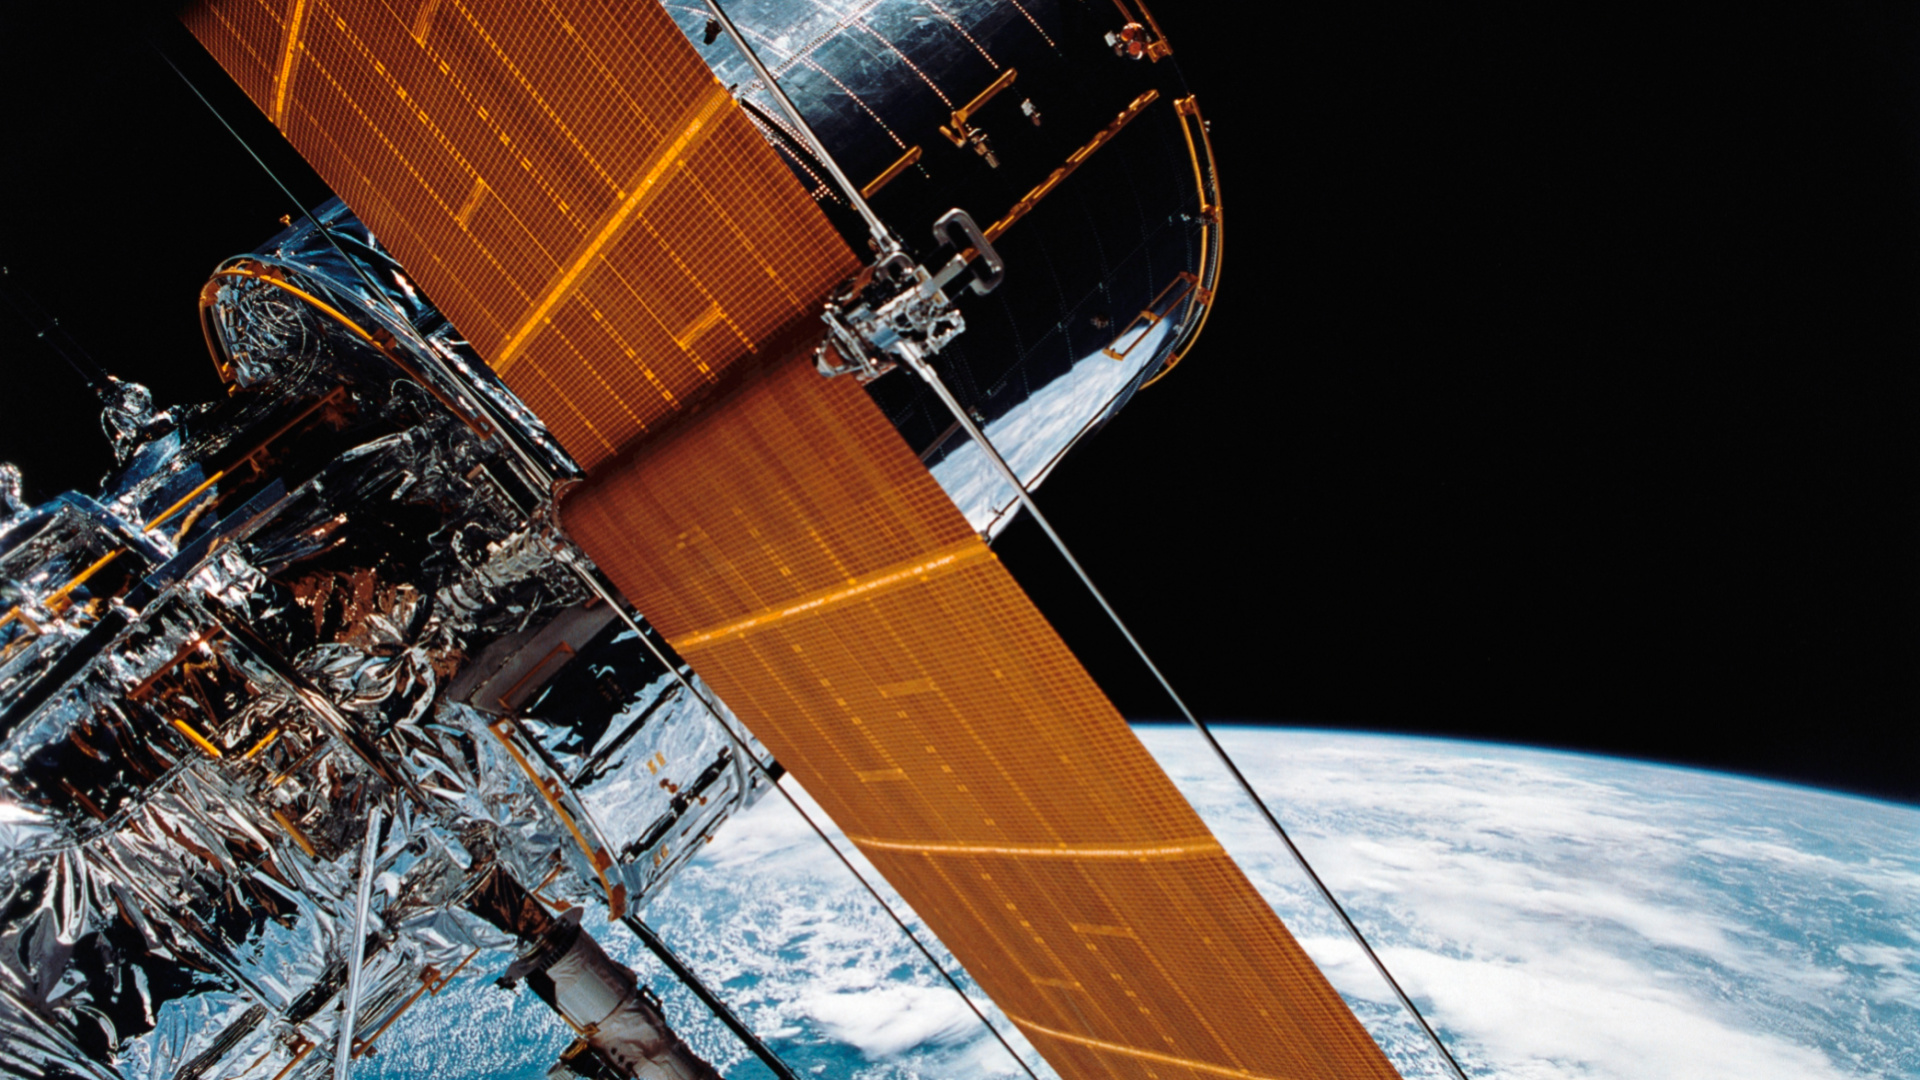 In this April 25, 1990 photograph provided by NASA, most of the giant Hubble Space Telescope can be seen as it is suspended in space by Discovery's Remote Manipulator System (RMS) following the deployment of part of its solar panels and antennae. (NASA via AP)